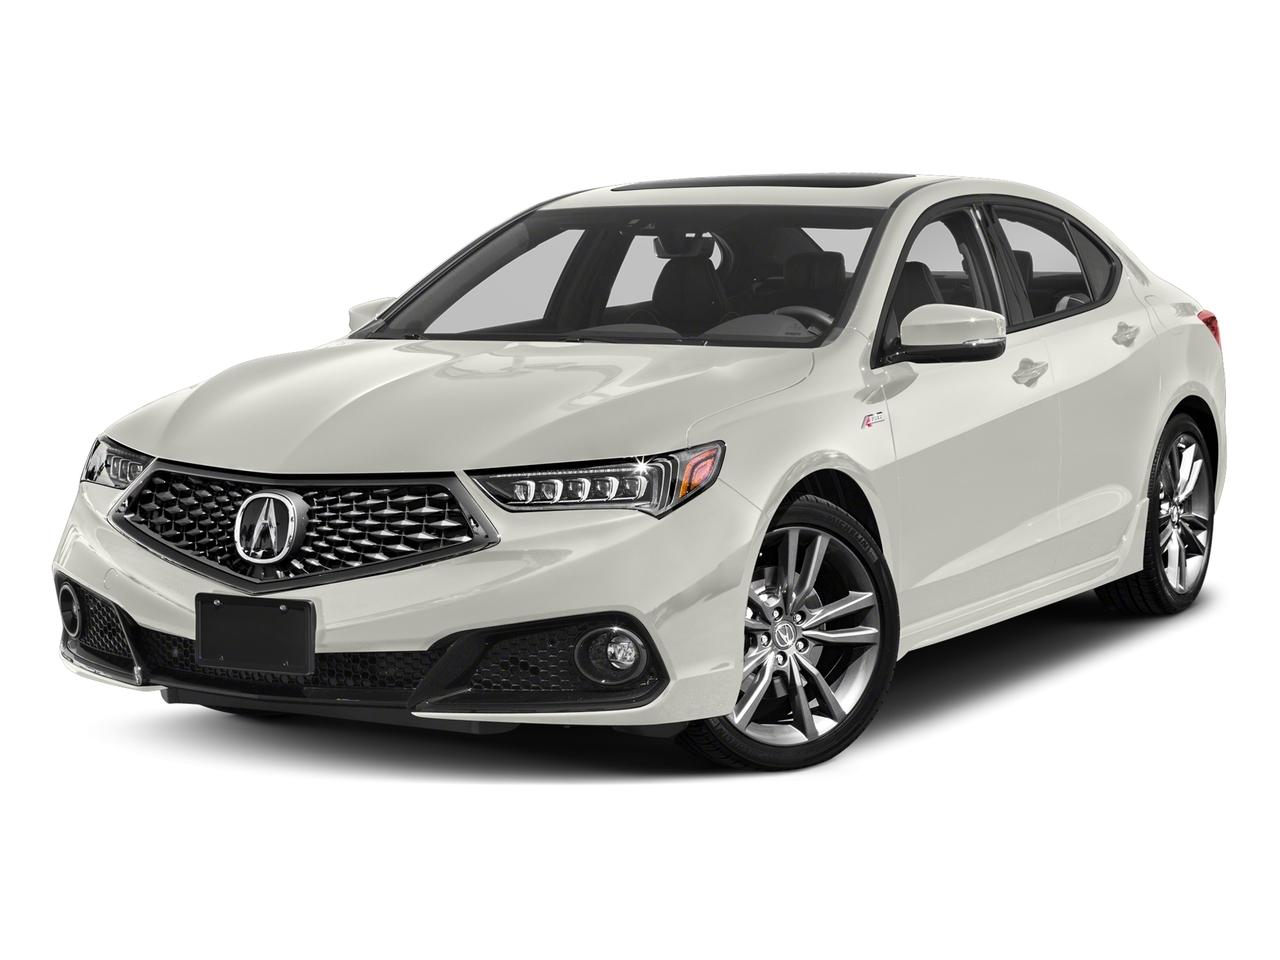 2018 Acura TLX Vehicle Photo in Bowie, MD 20716